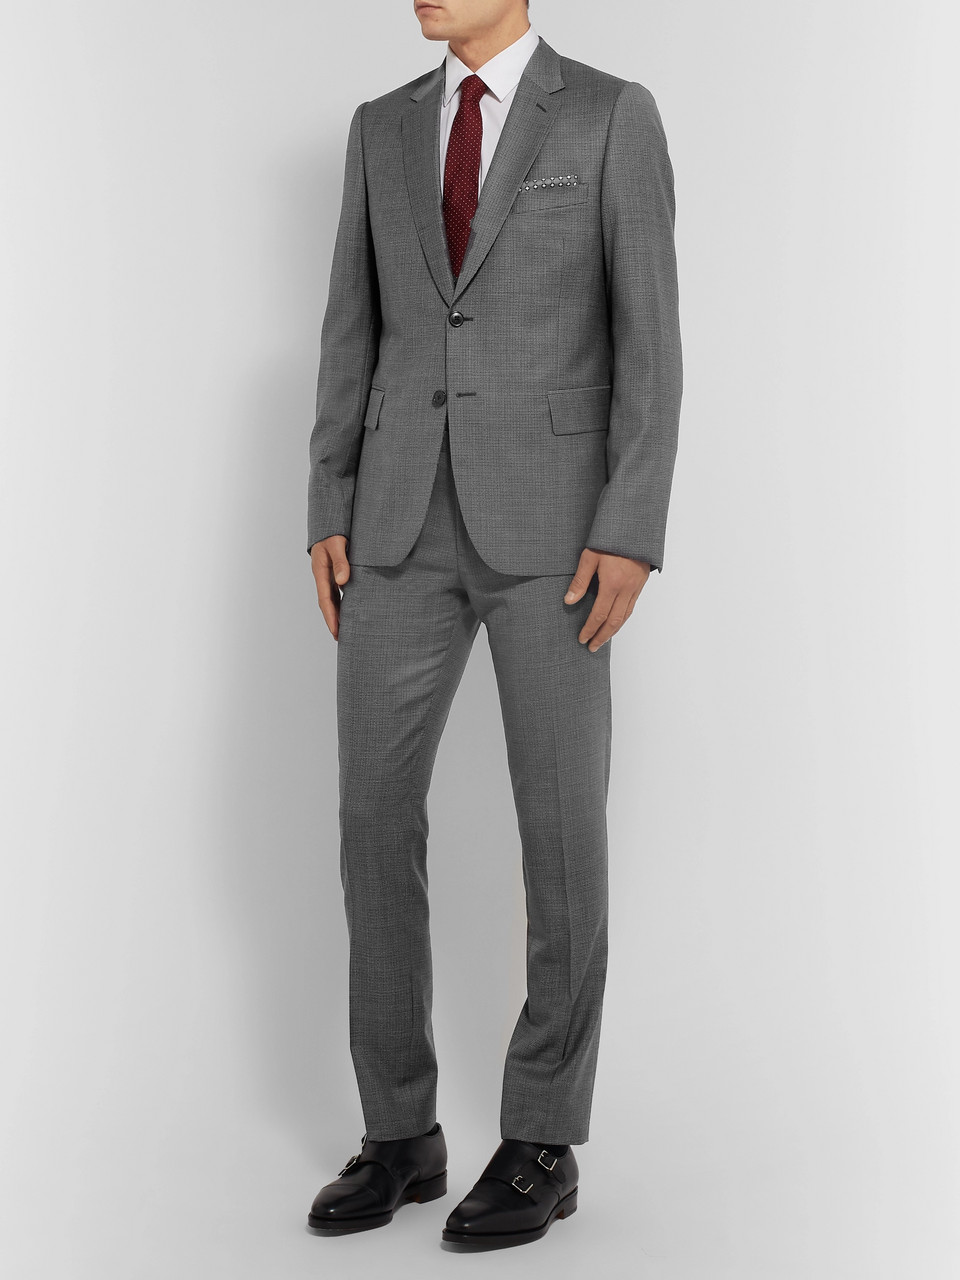 Paul Smith Navy Soho Slim-Fit Puppytooth Wool Suit Jacket